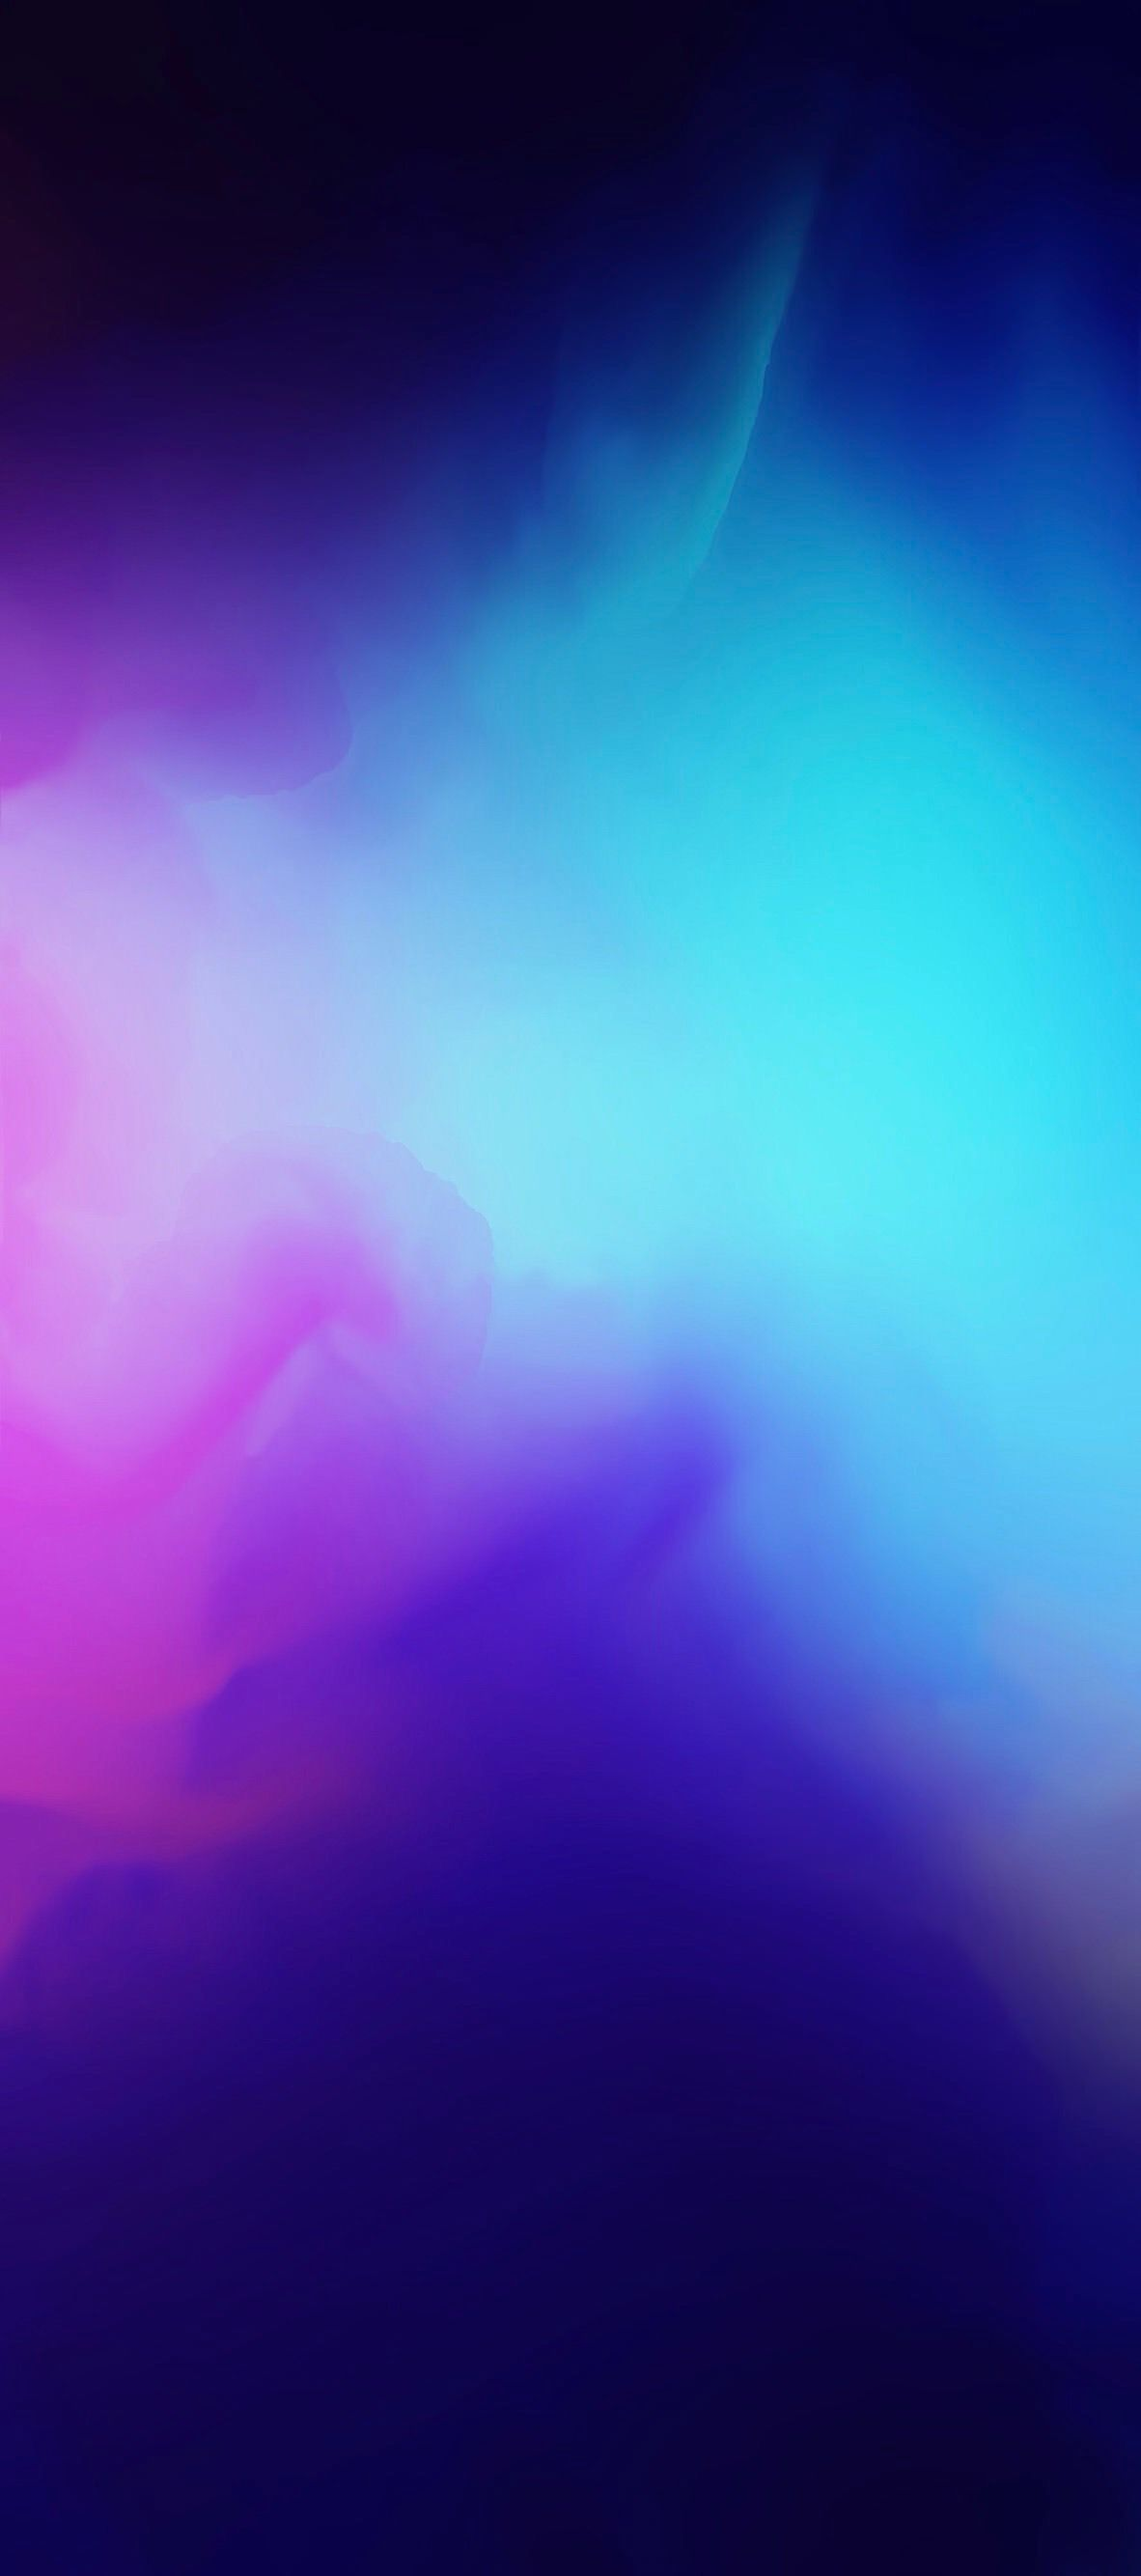 ios 11 iphone x blue purple abstract apple wallpaper